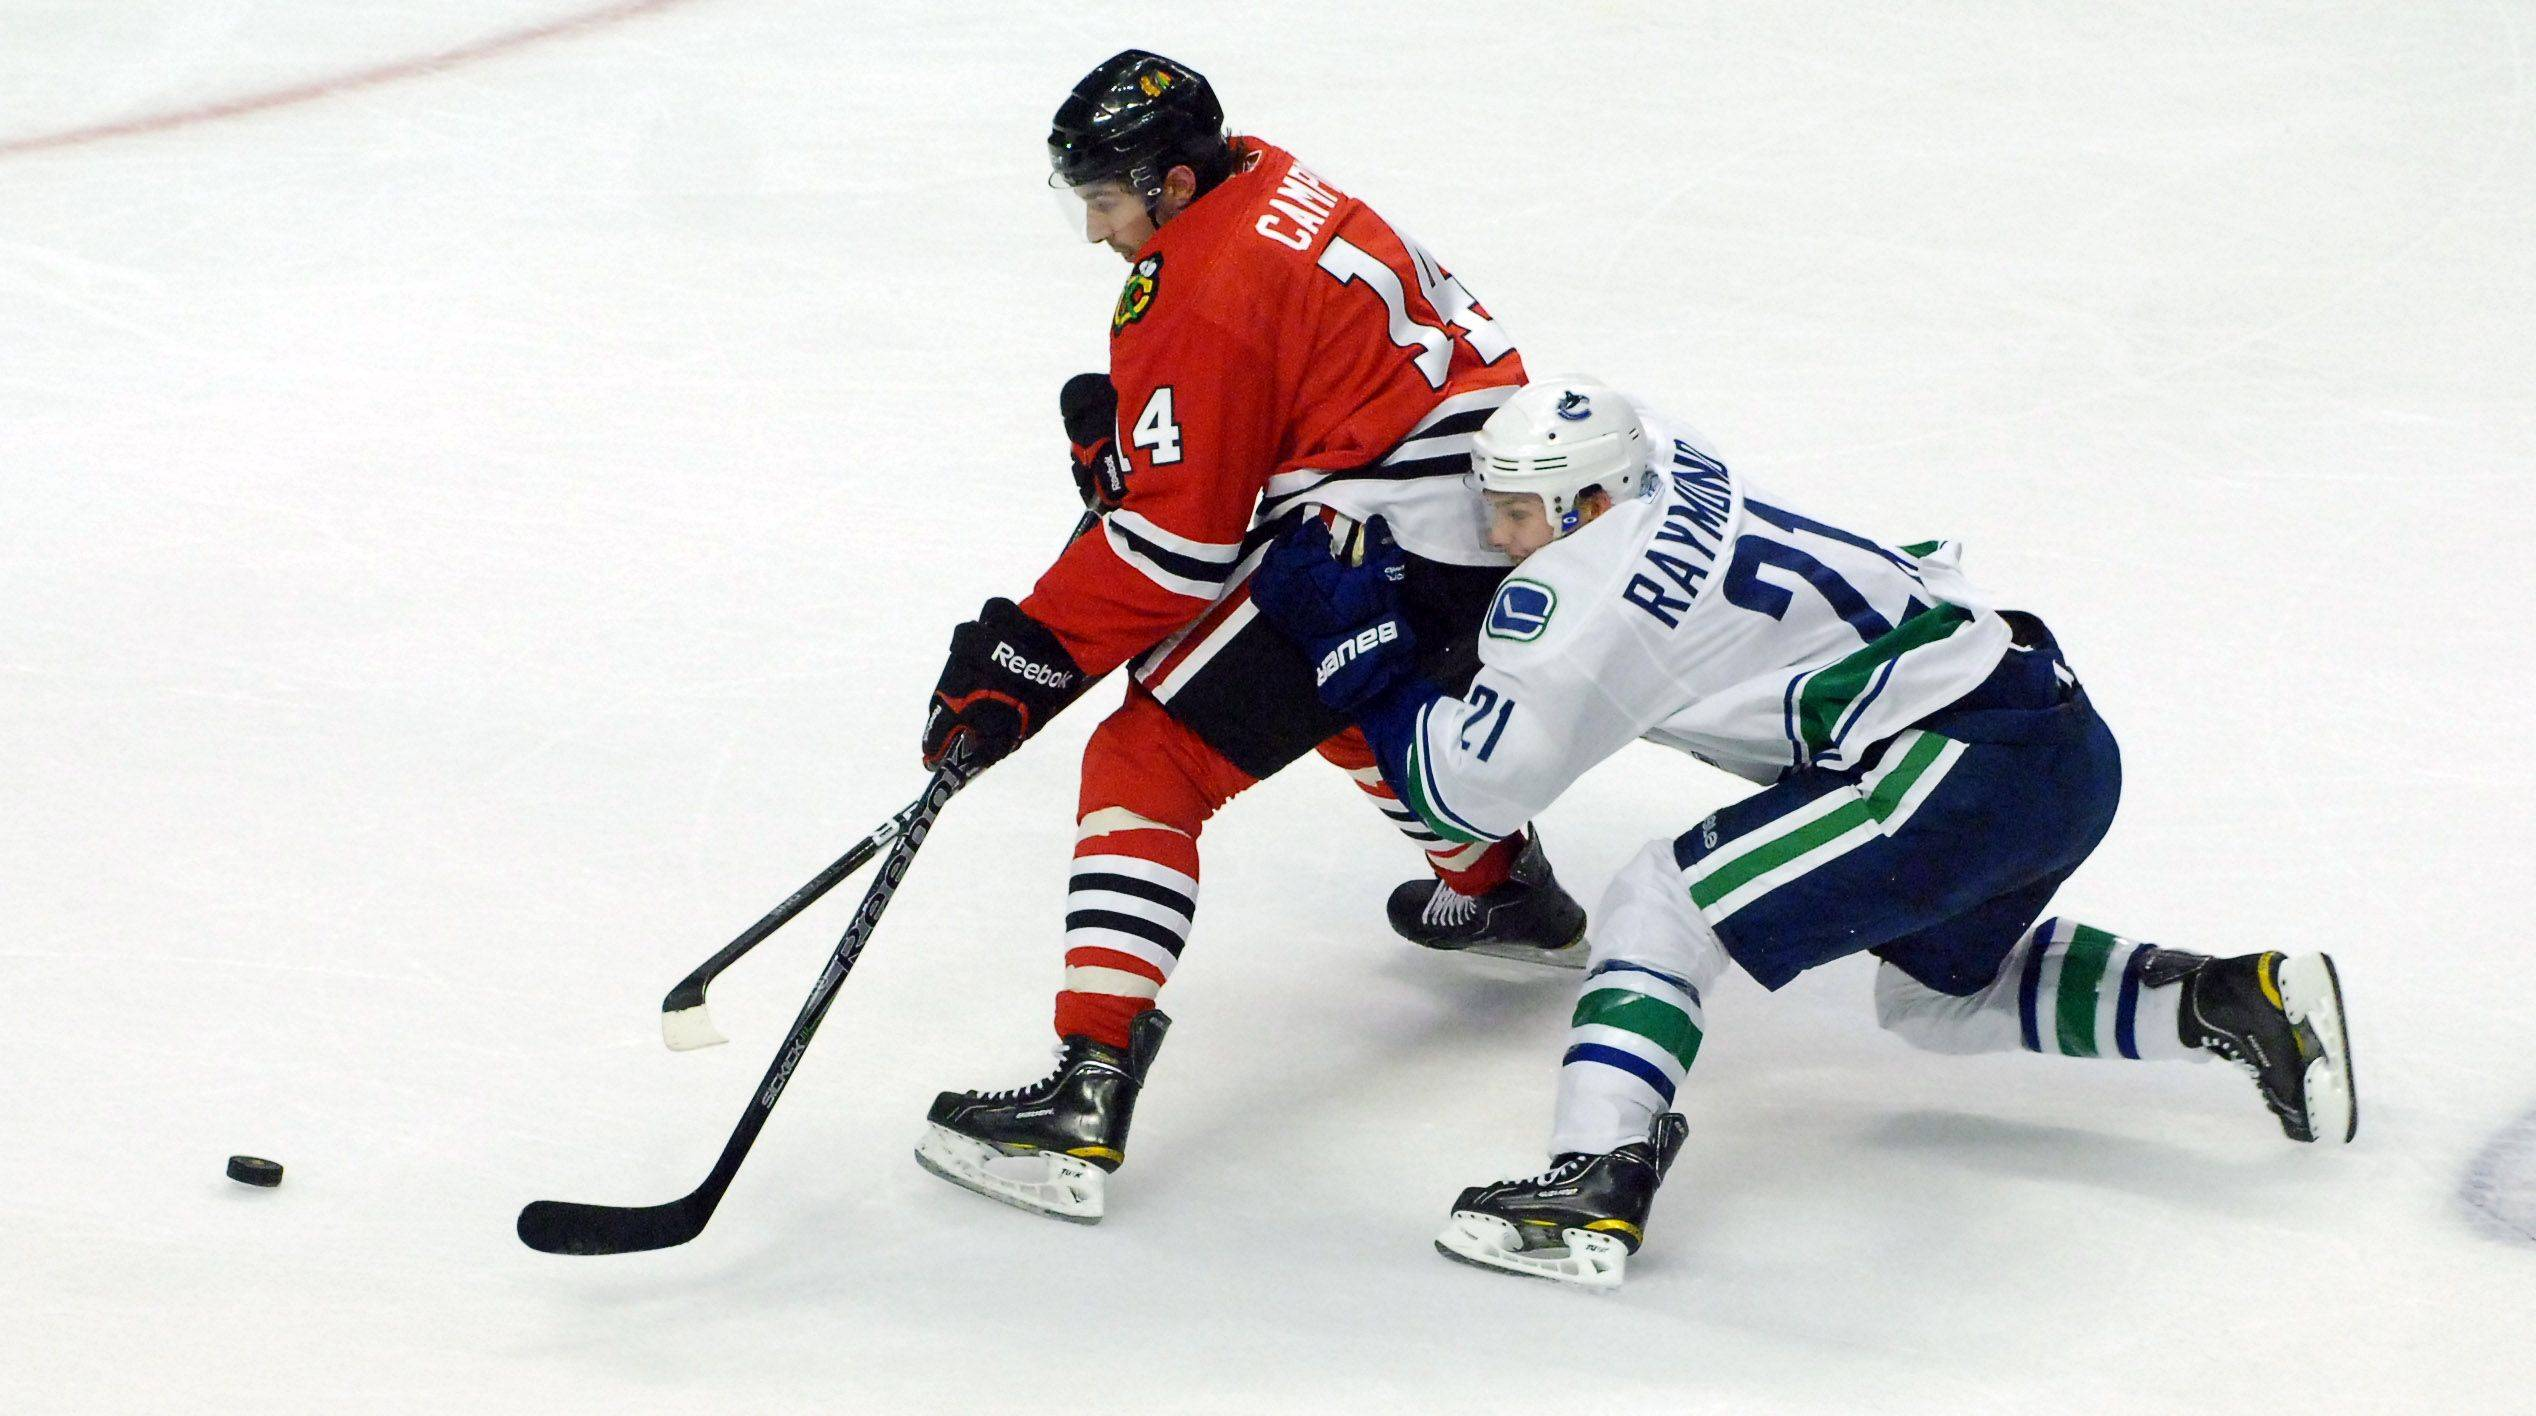 Chicago Blackhawks defenseman Chris Campoli battles for the puck with Vancouver Canucks left wing Mason Raymond.